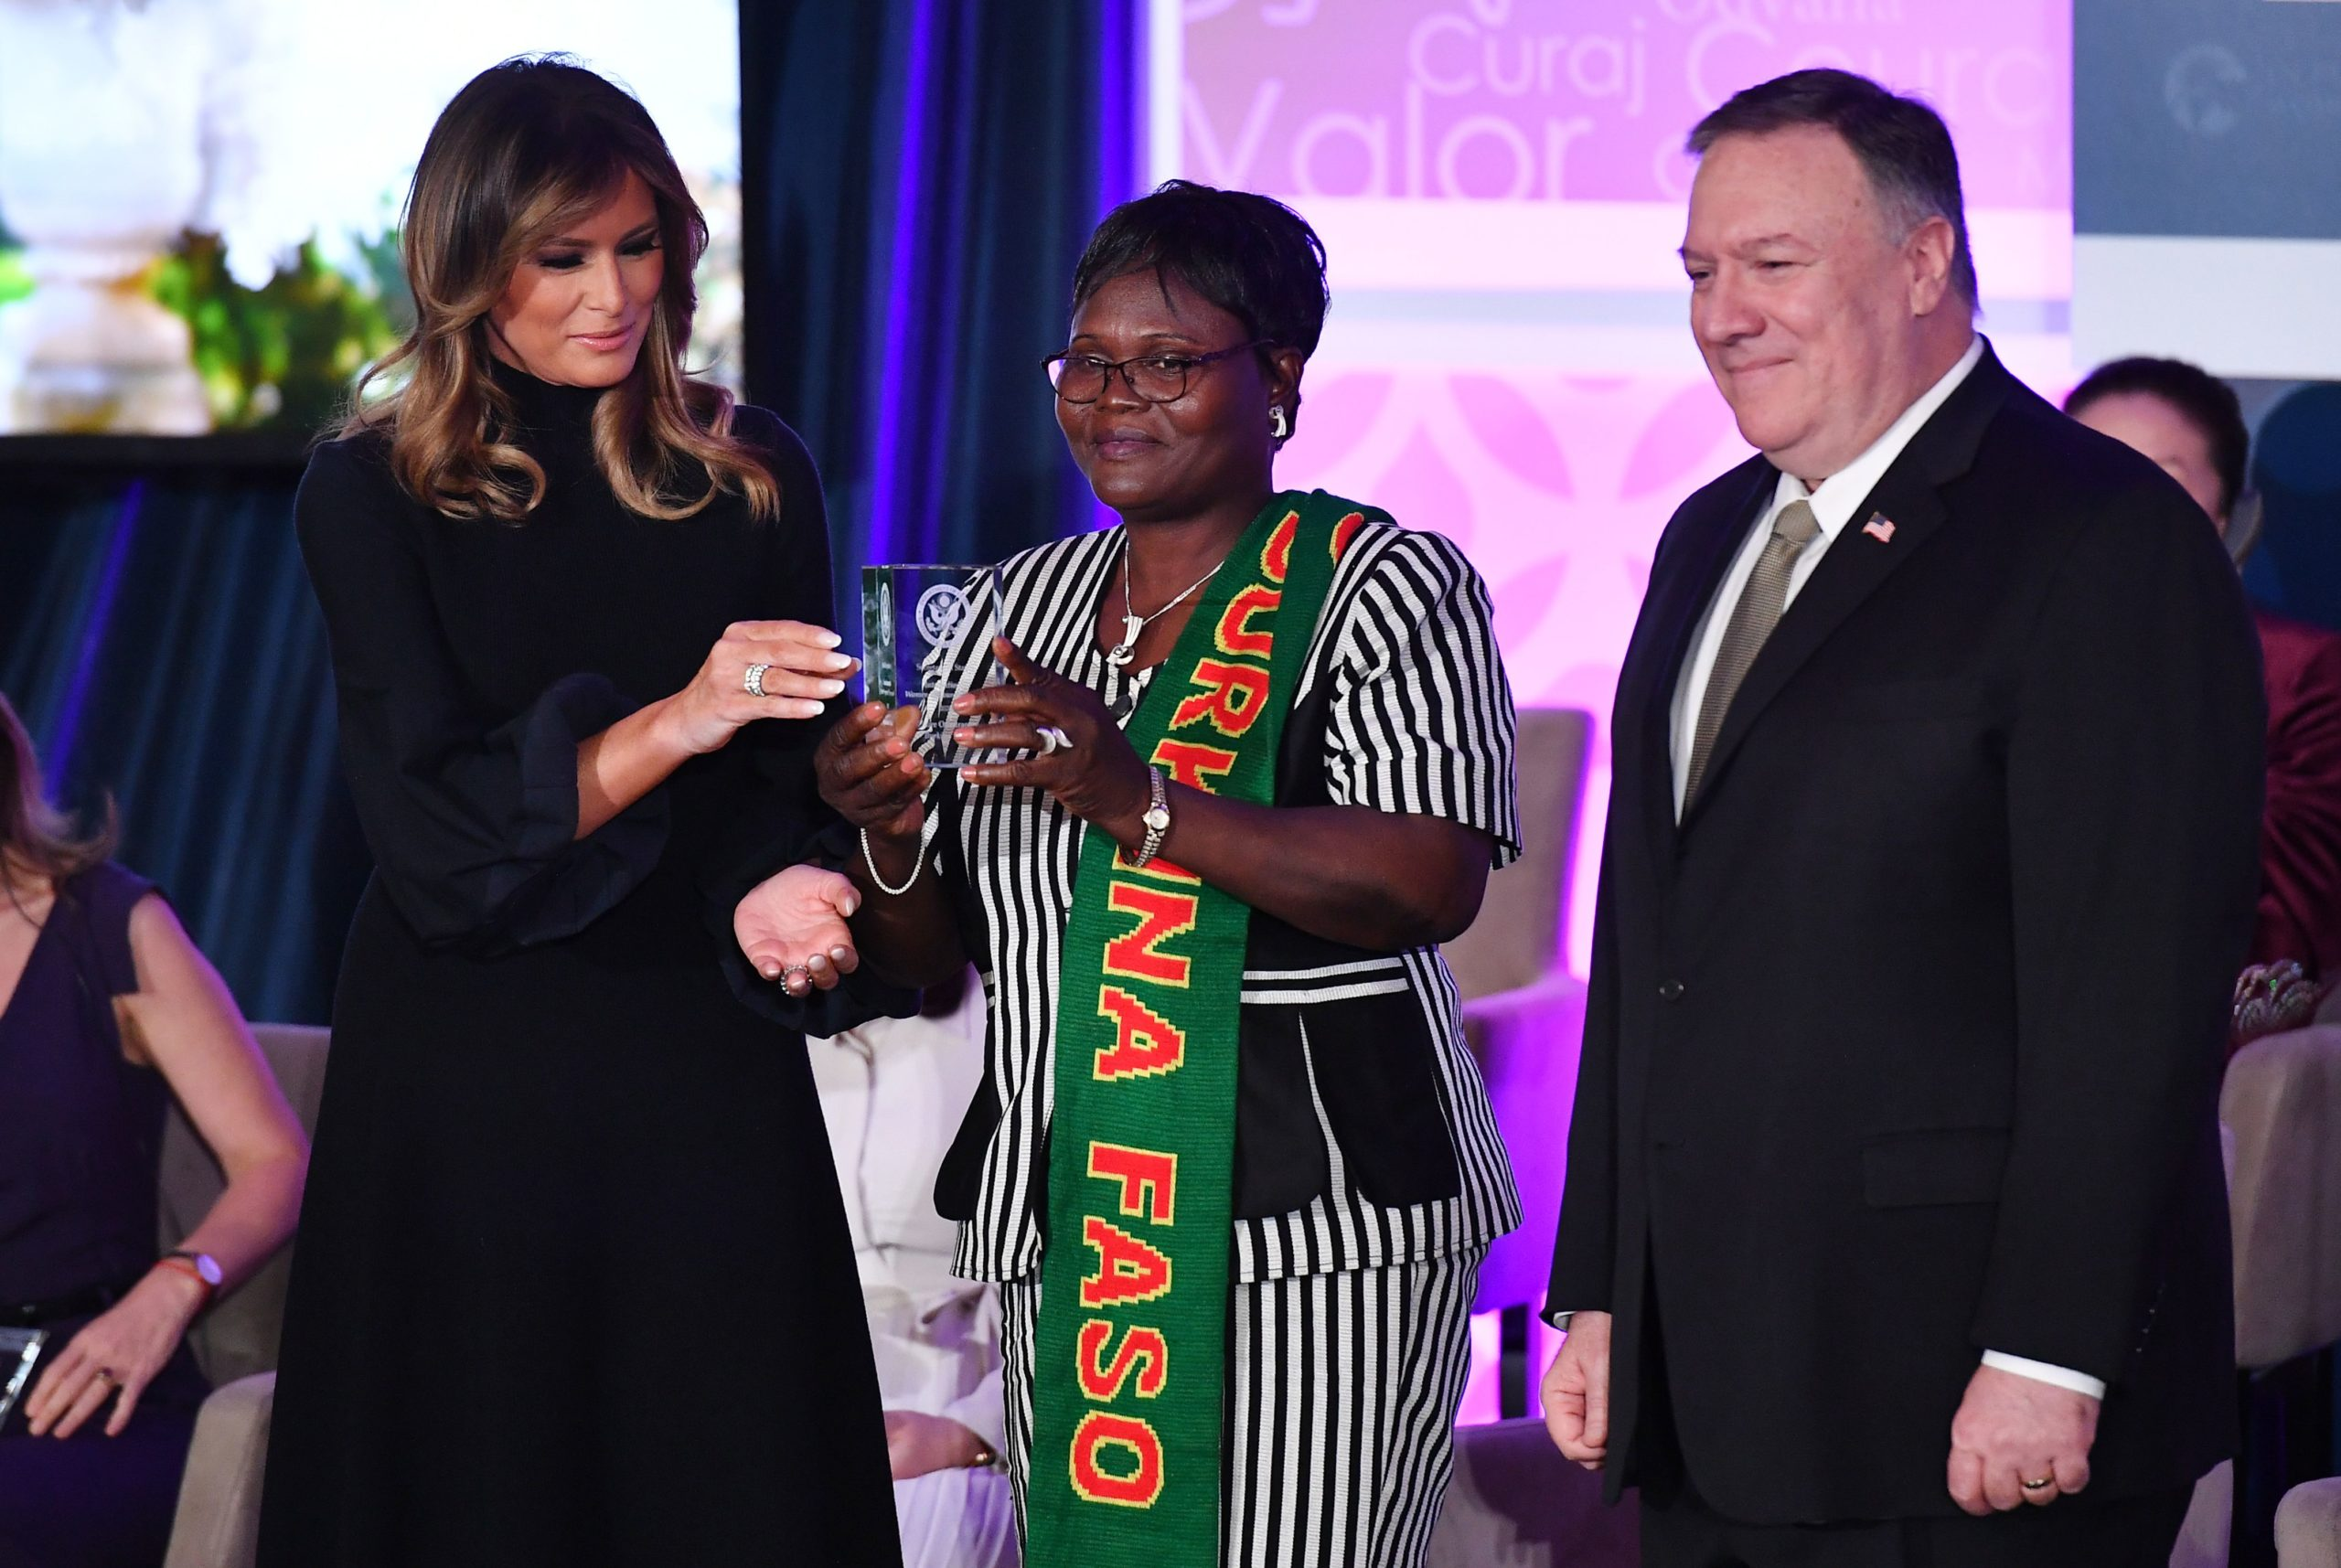 International Women of Courage (IWOC) Award recipient Claire Ouedraogo of Burkina Faso poses with US Secretary of State Mike Pompeo and First Lady Melania Trump at the State Department in Washington, DC on March 4, 2020. (Mandel Ngan/AFP via Getty Images)